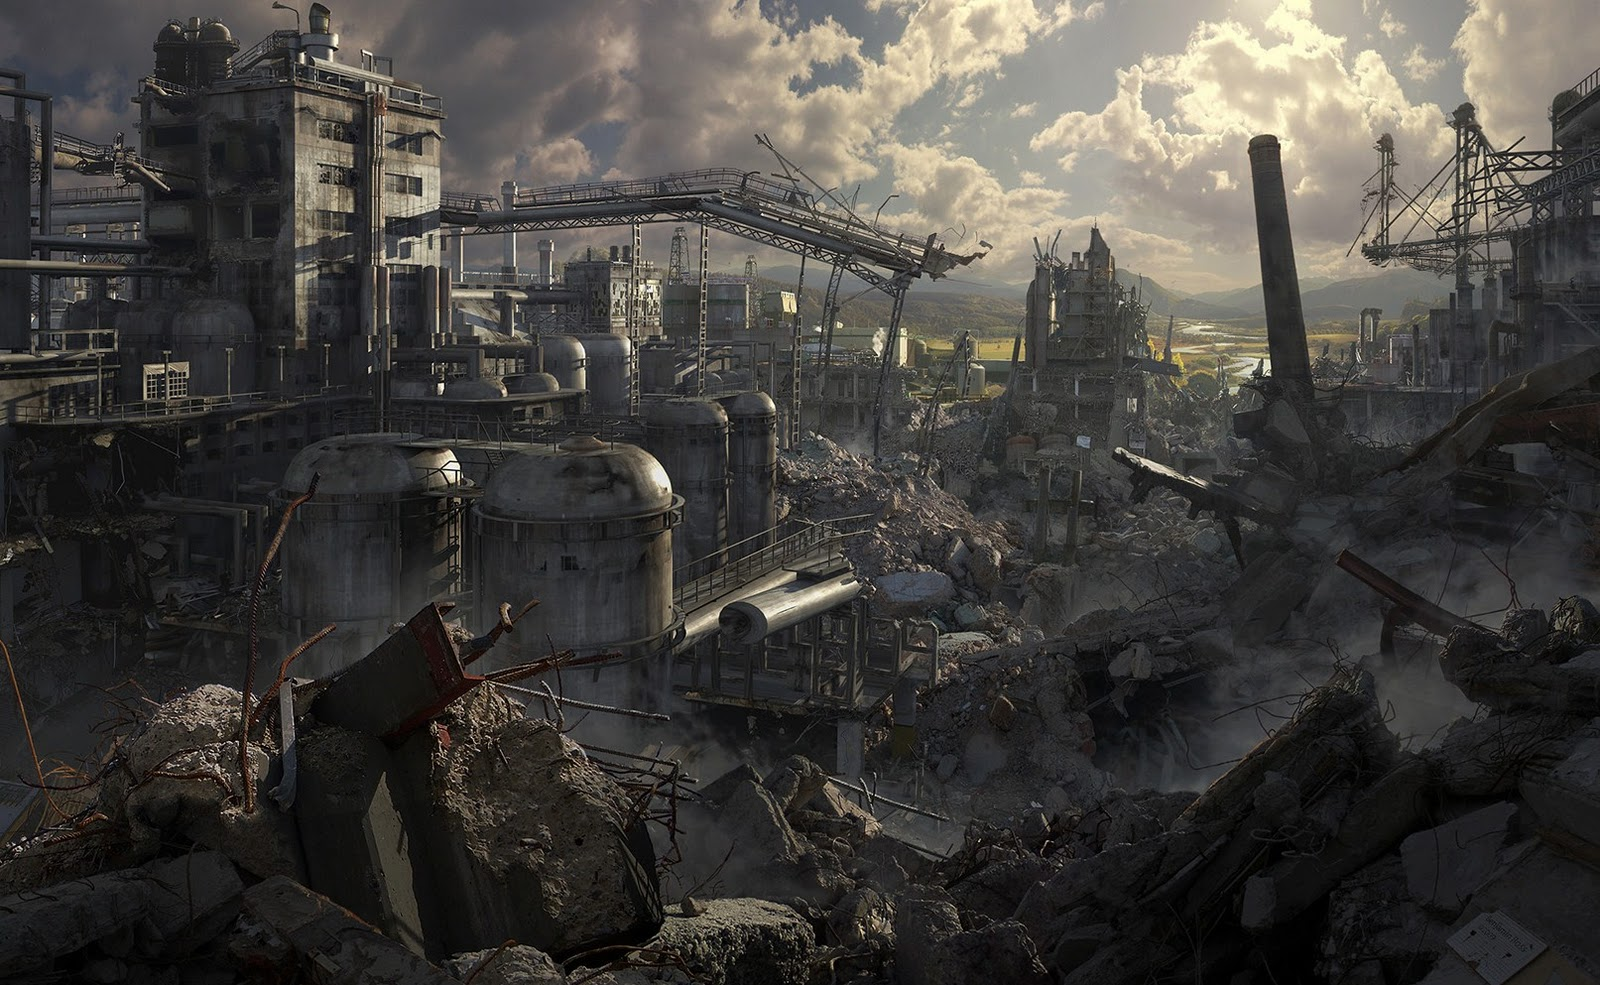 Apocalyptic Destruction City